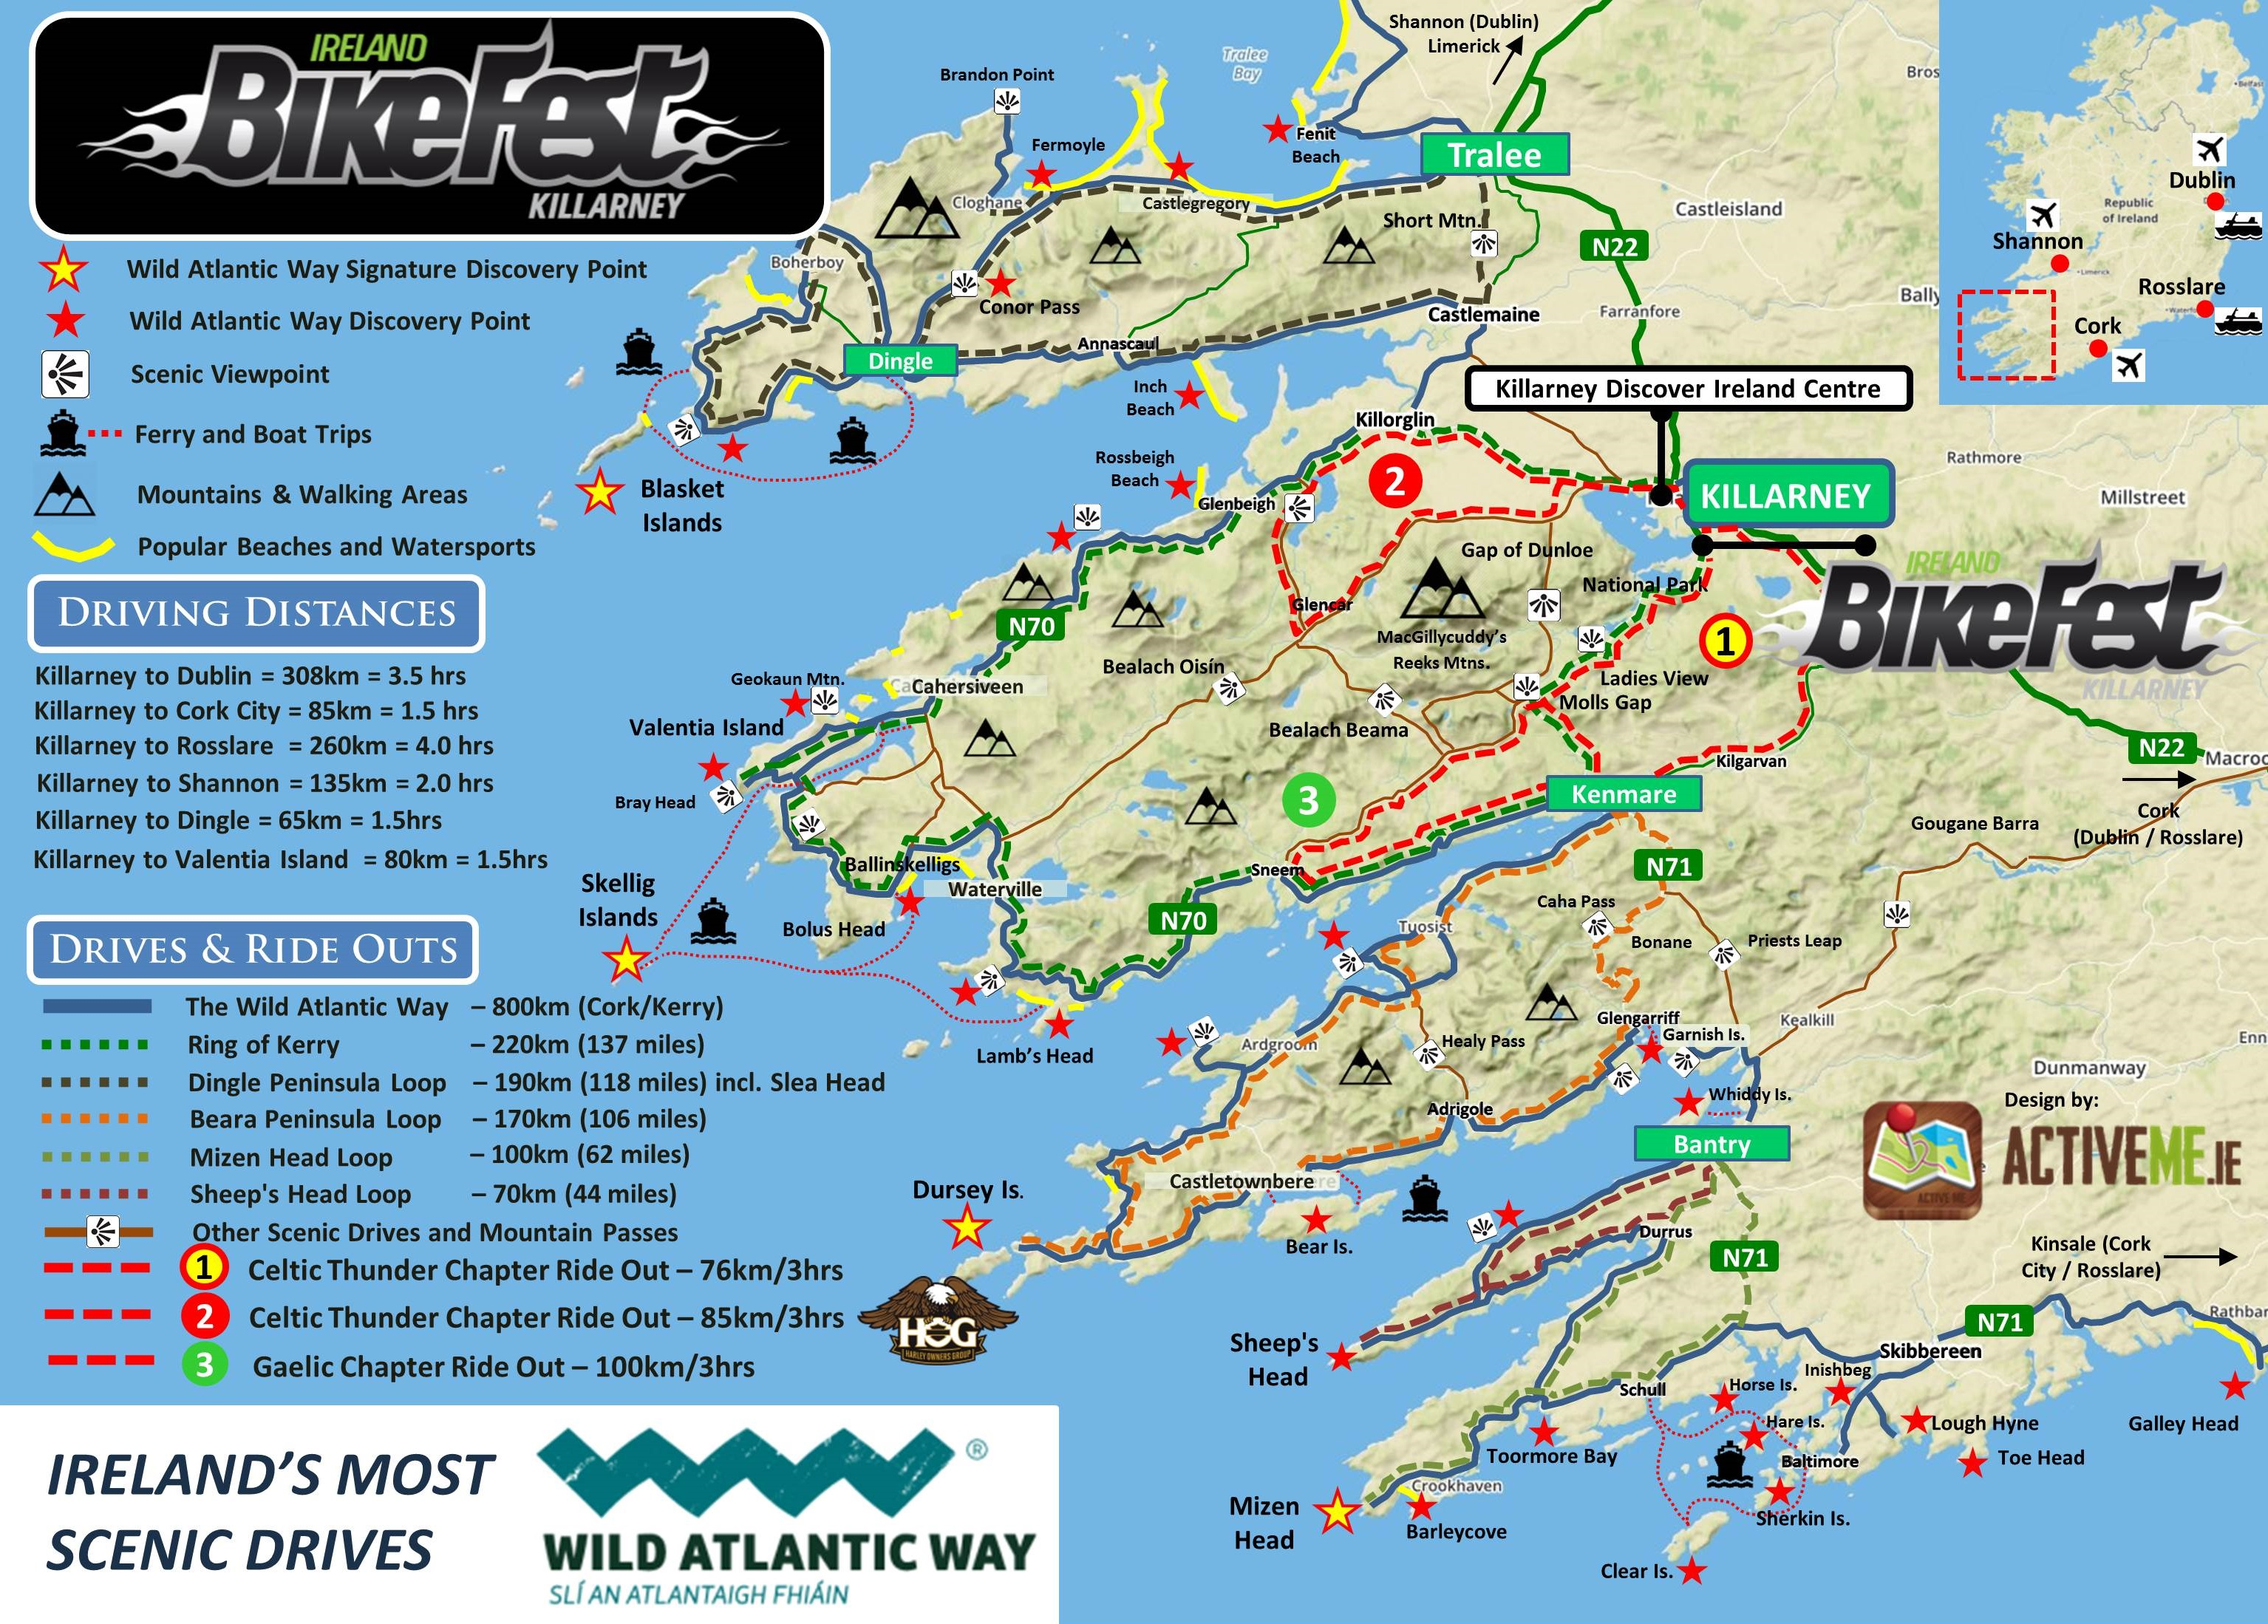 Ireland-Bikefest-Killarney-Festival-FINAL-Ride-Out-ROUTE-Map-June-2016-30.051